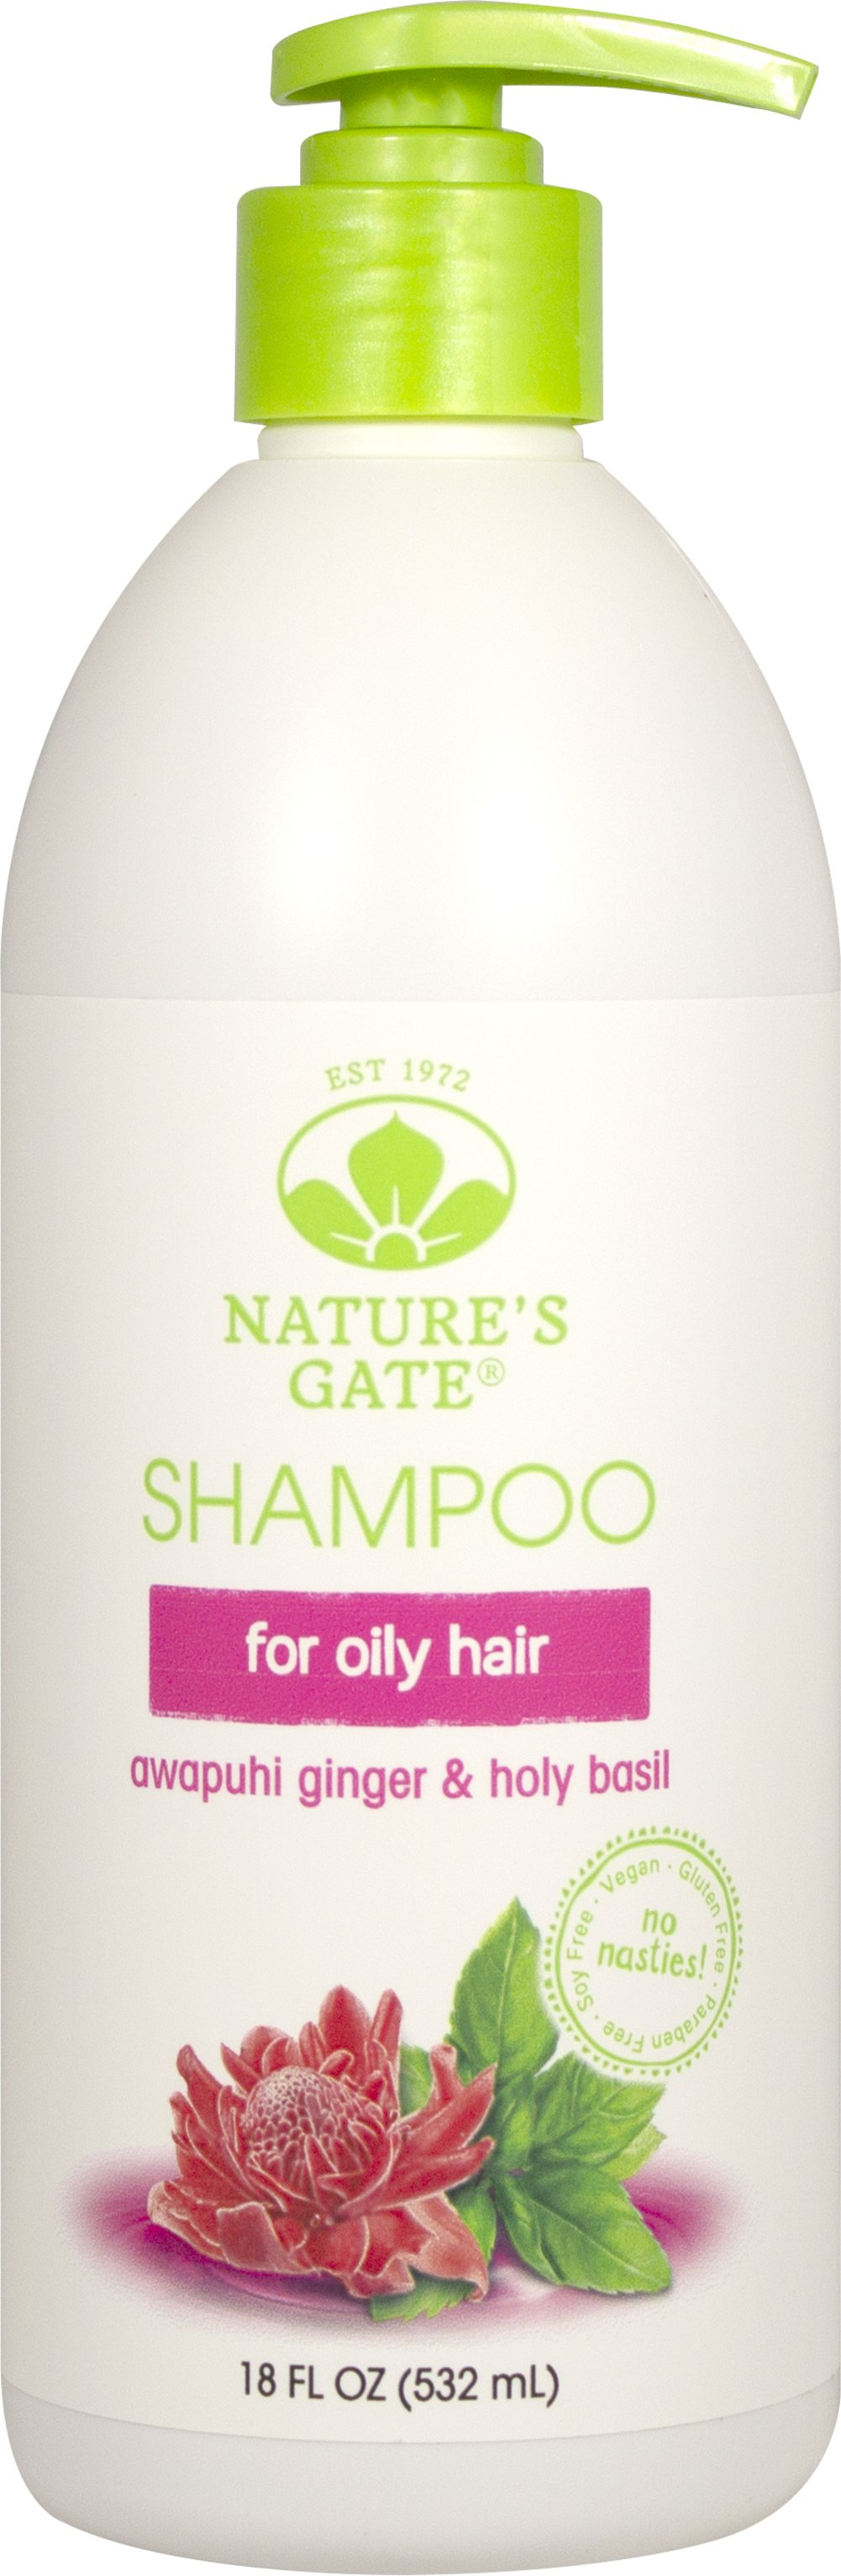 Nature's Gate Awapuhi Volumizing Shampoo <p><strong>From the Manufactuer's Label:</strong></p><p><strong>Volumizing</strong></p><p>Nature's Gate Awapuhi Shampoo gently cleanses while helping add fullness to fine, limp hair.  An array of stimulating and nourishing botanicals including Awapuhi, also known as Hawaiian White Ginger, is combined with our 7 Healthy Hair nutrients.  Gentle enough for everyday use.</p><p><stron